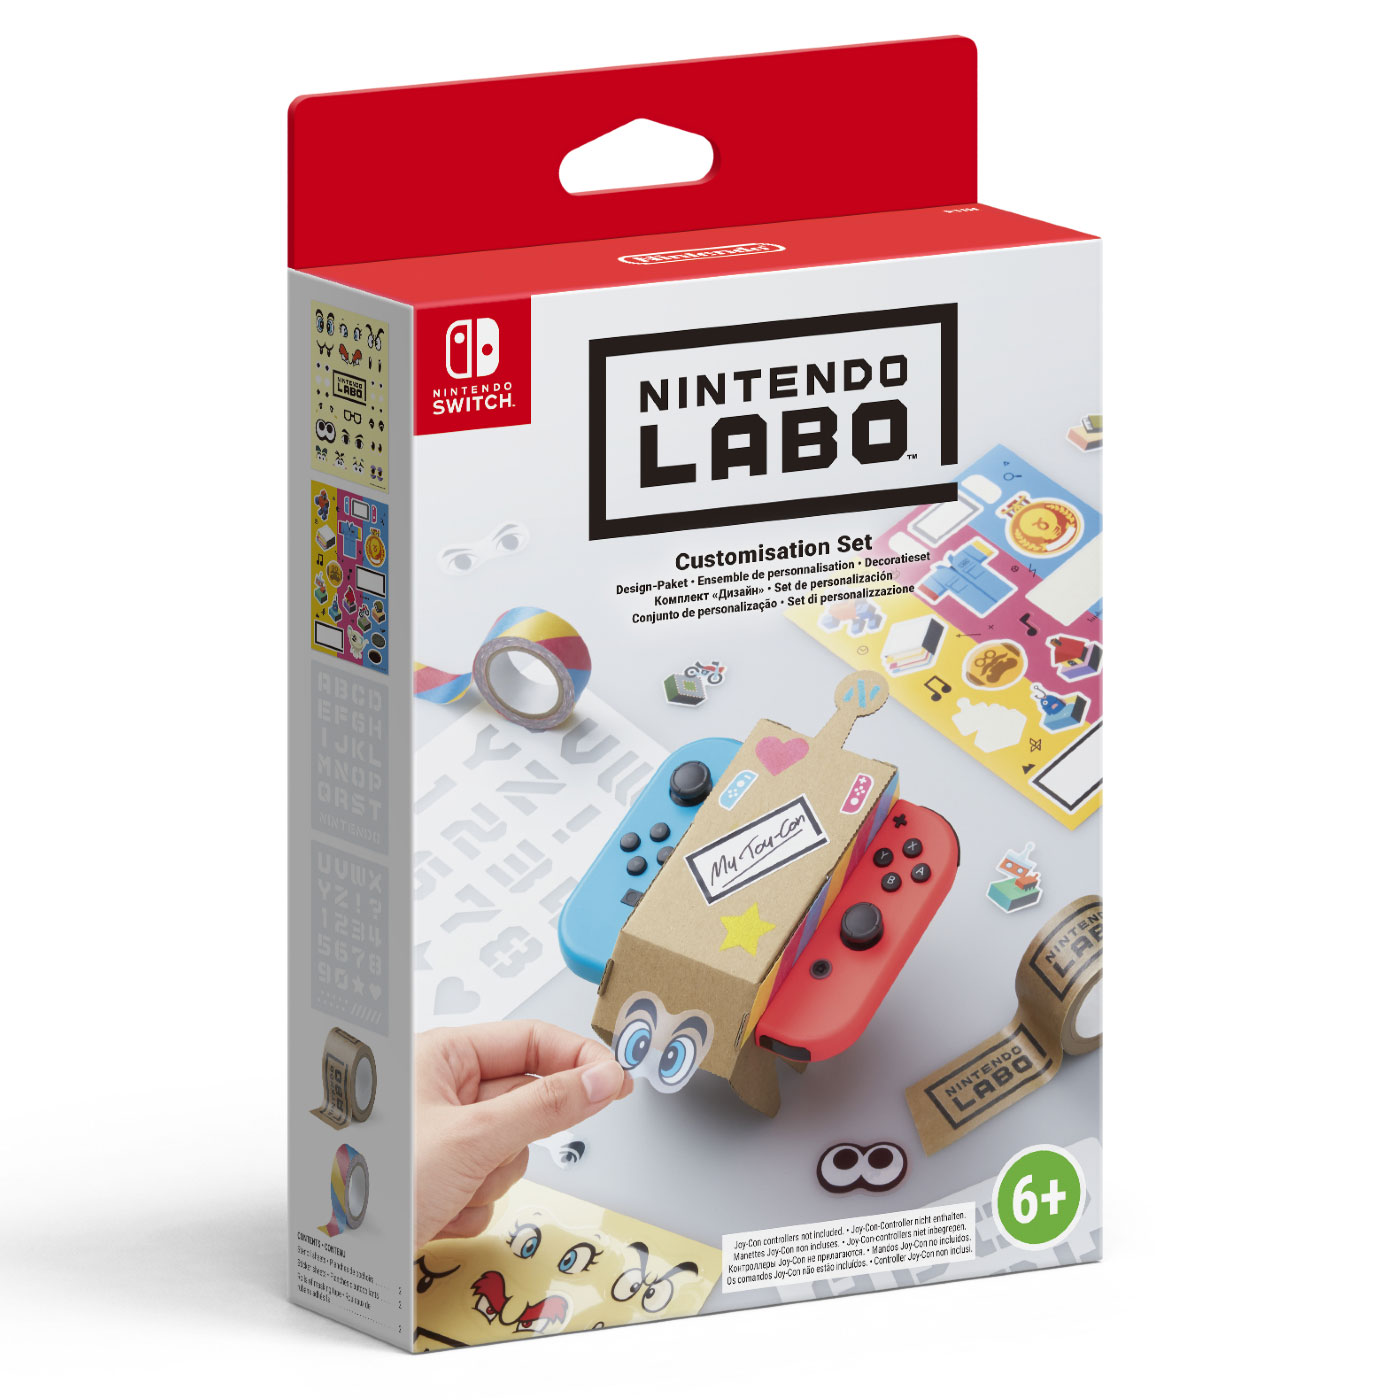 nintendo labo ensemble de personnalisation accessoires nintendo switch nintendo sur. Black Bedroom Furniture Sets. Home Design Ideas